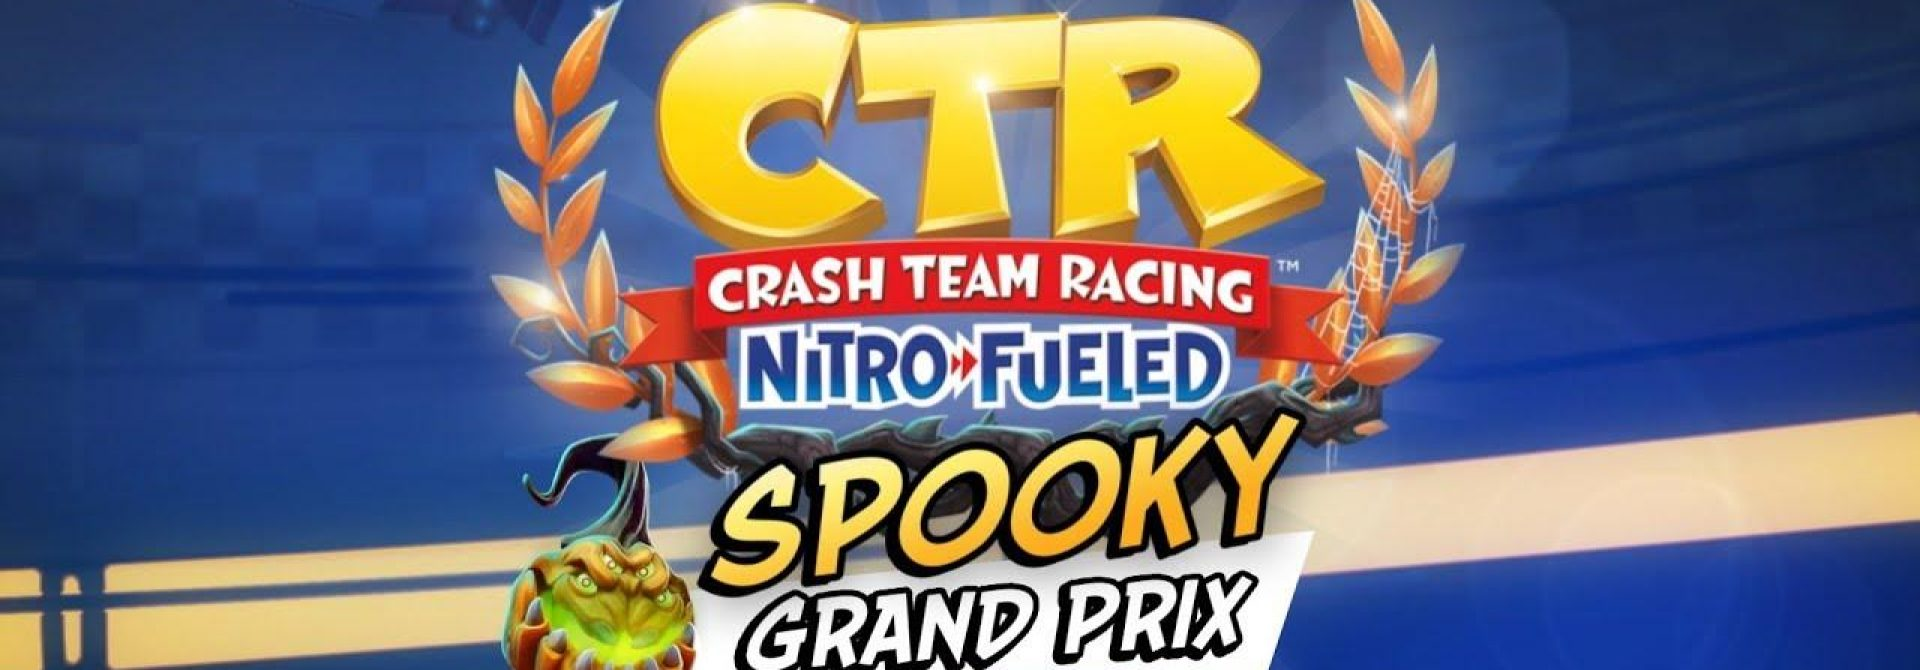 Crash Team Racing: Nitro-Fueled Launches Spooky Grand Prix October 4